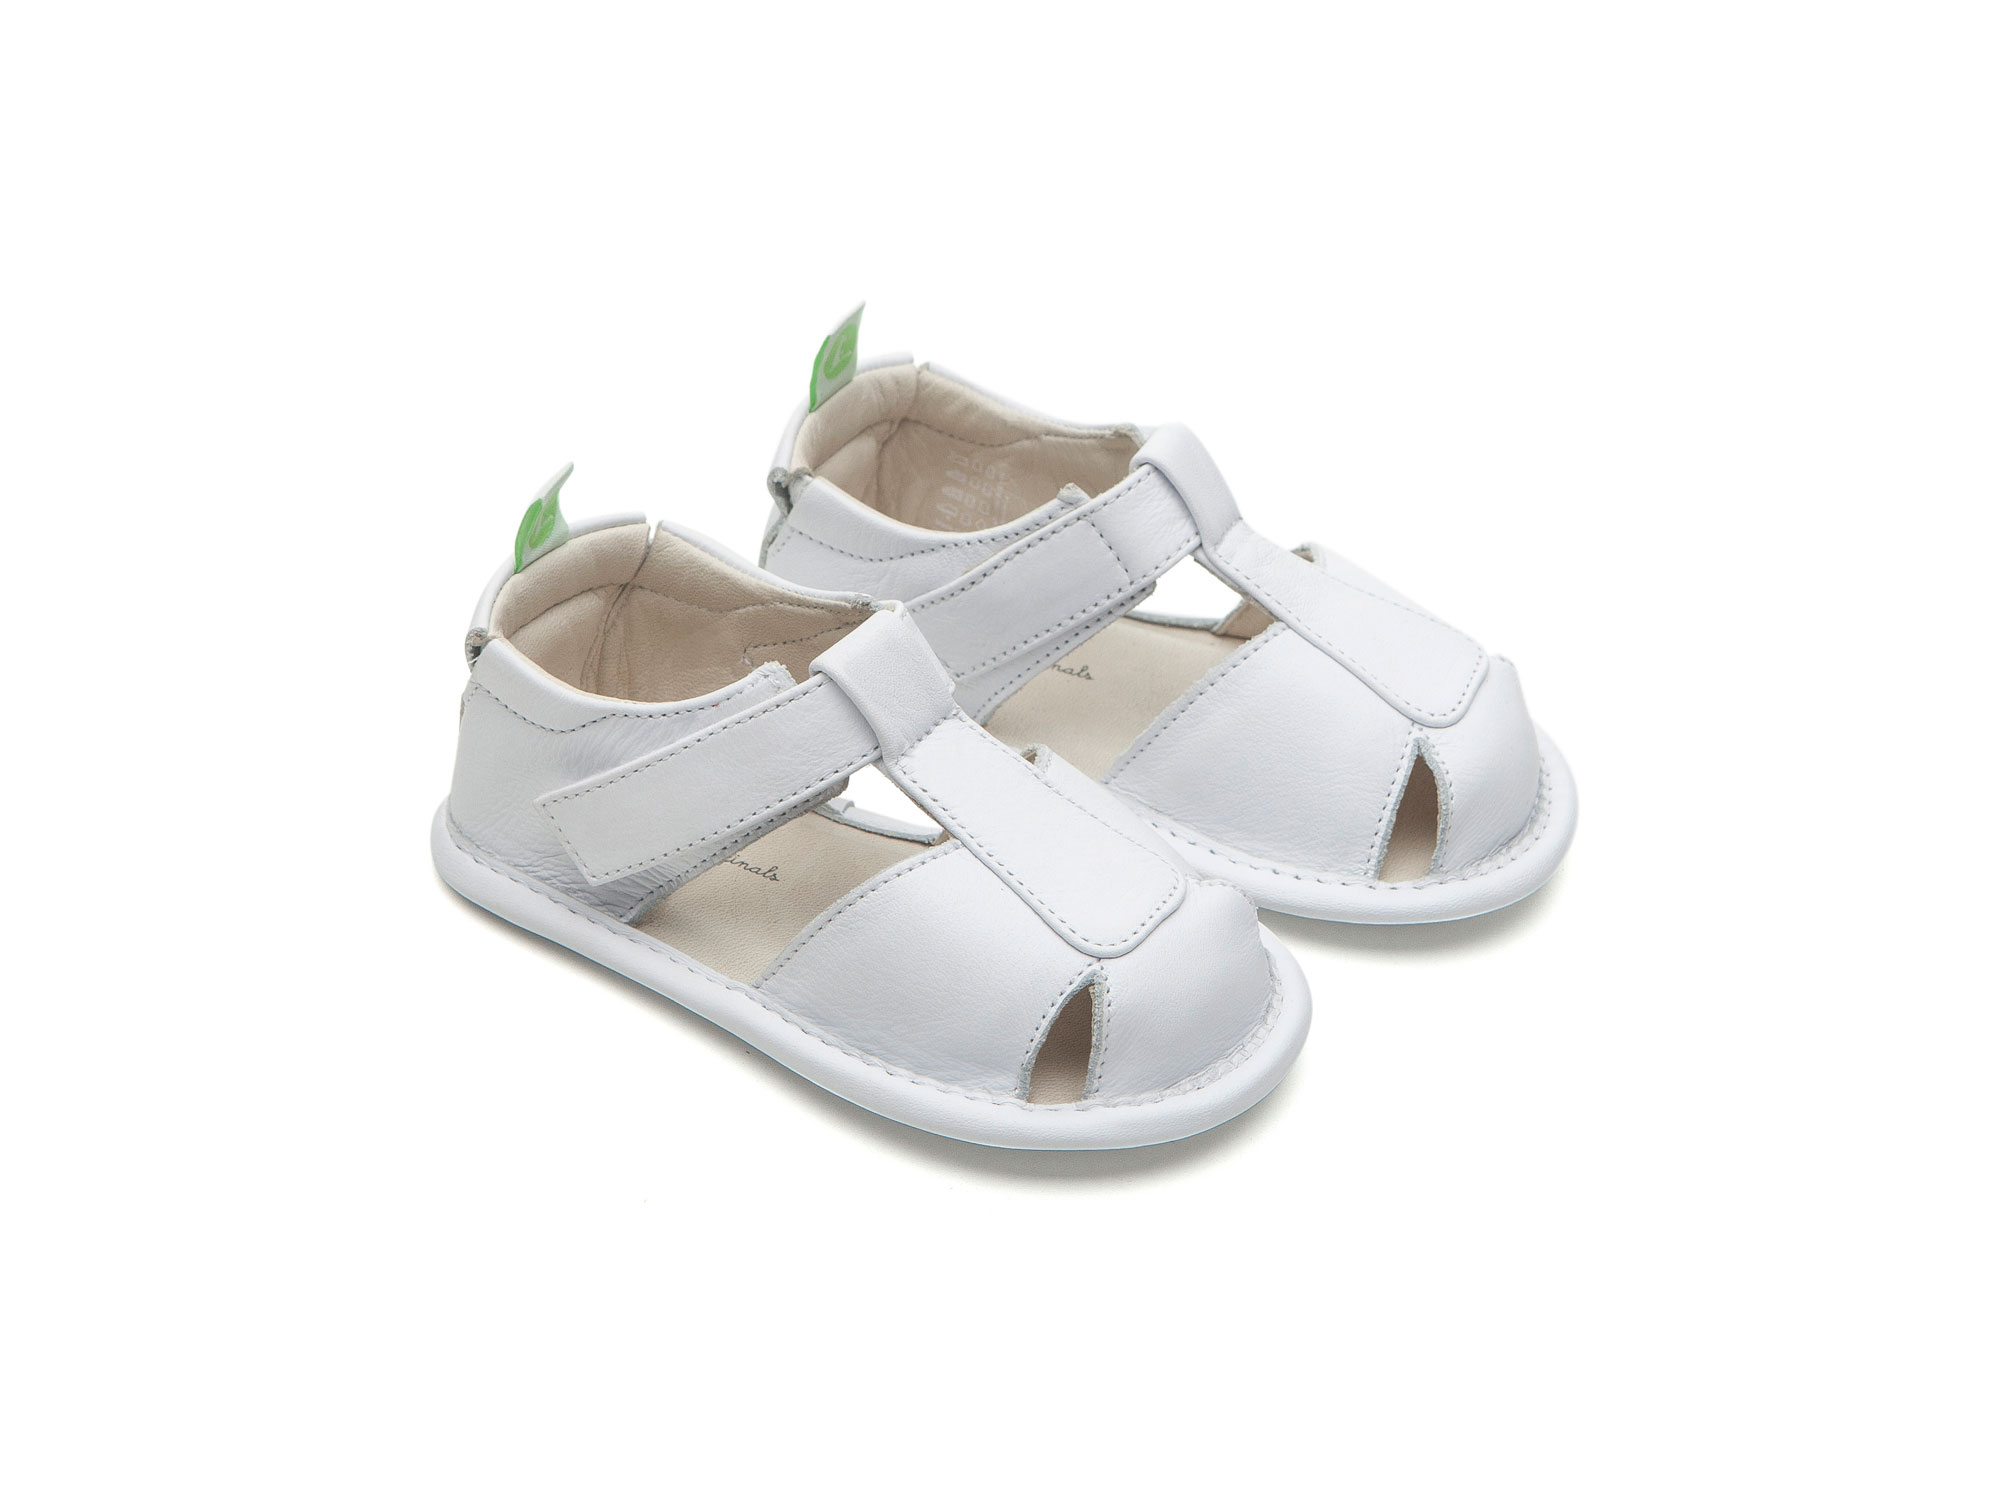 Baby Shoes Sandals Parky White Size 14